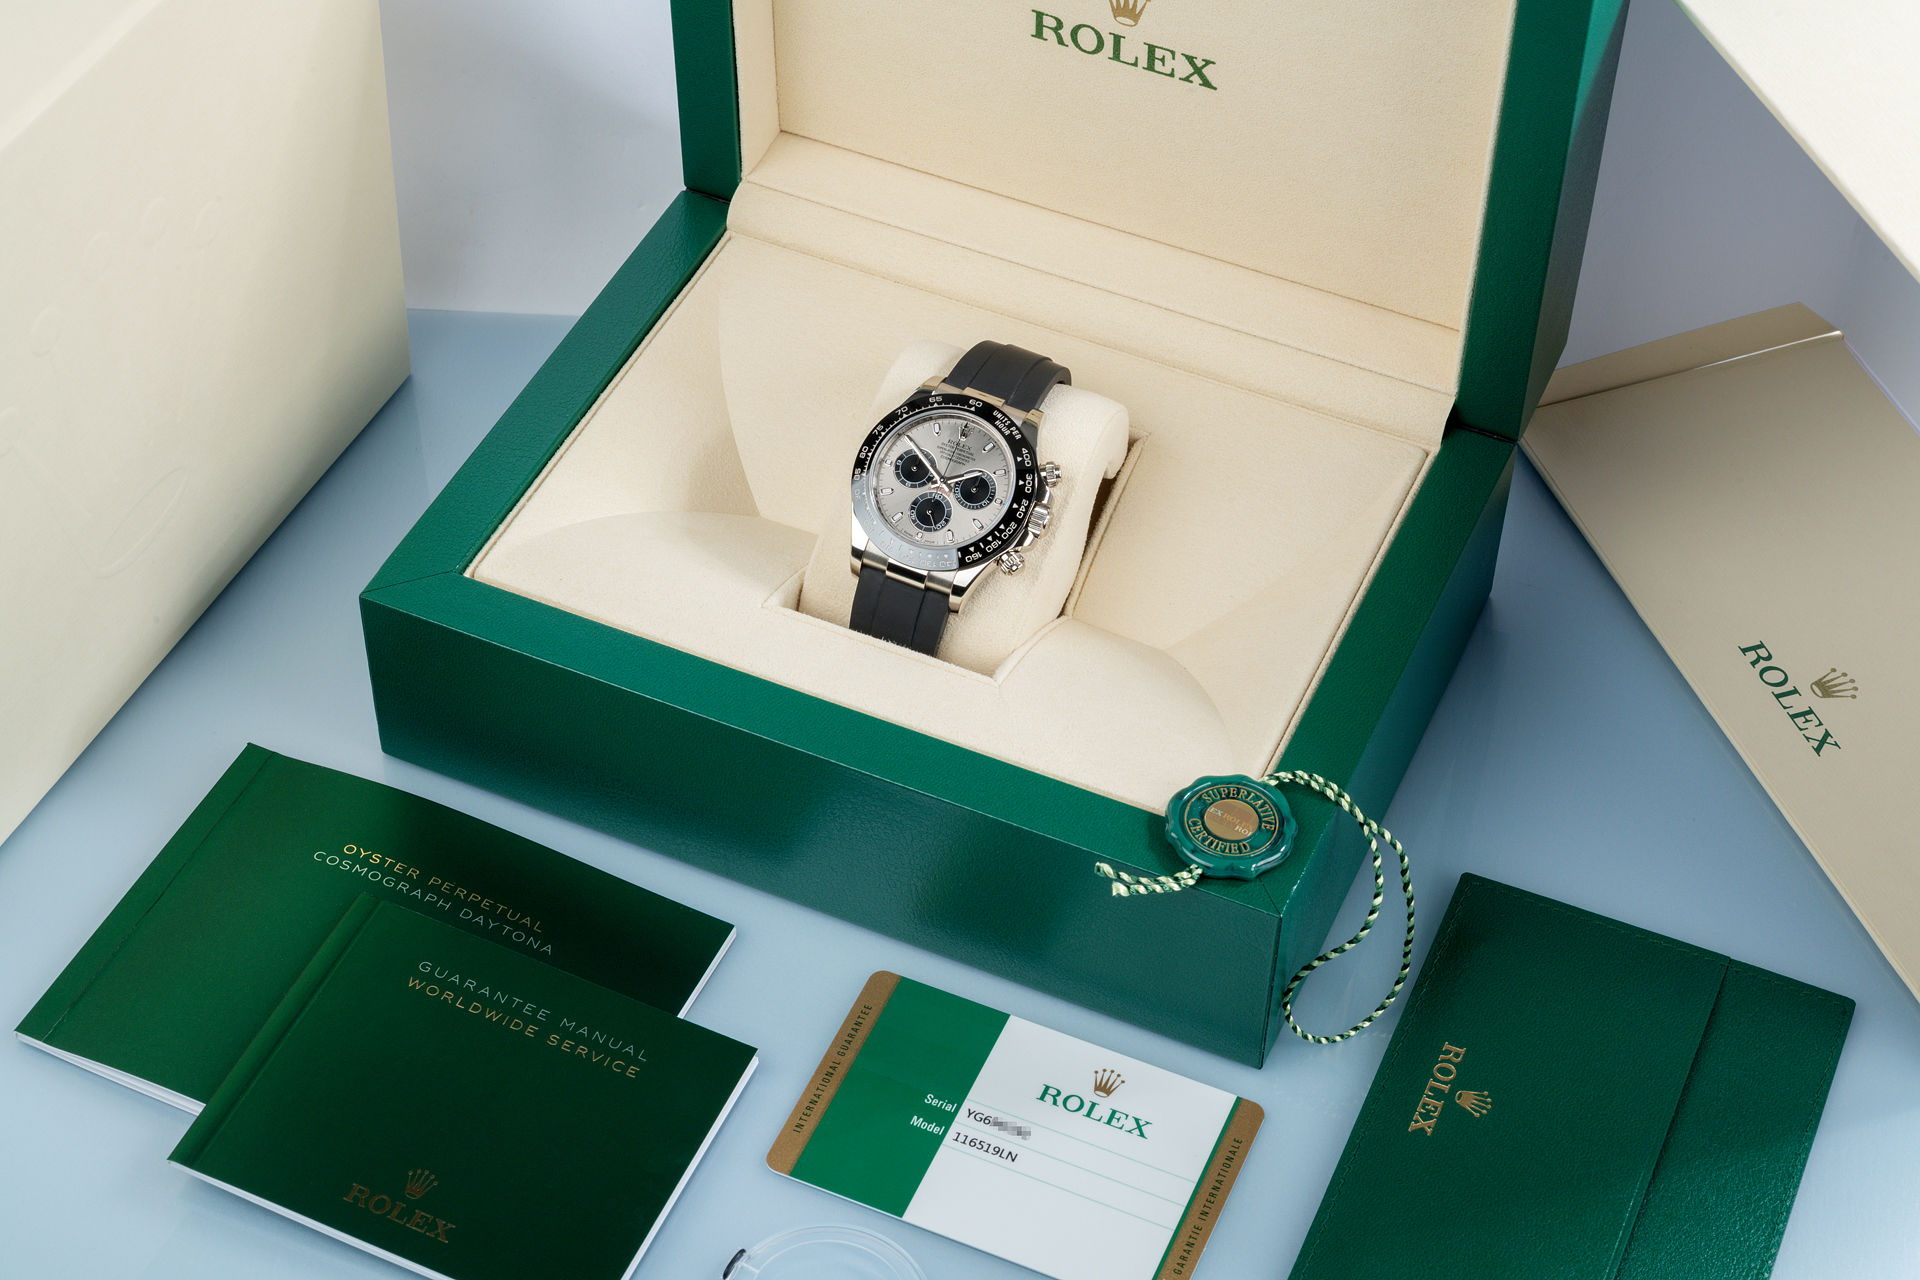 ref 116519LN | Latest Model '5 Year Warranty' | Rolex Cosmograph Daytona